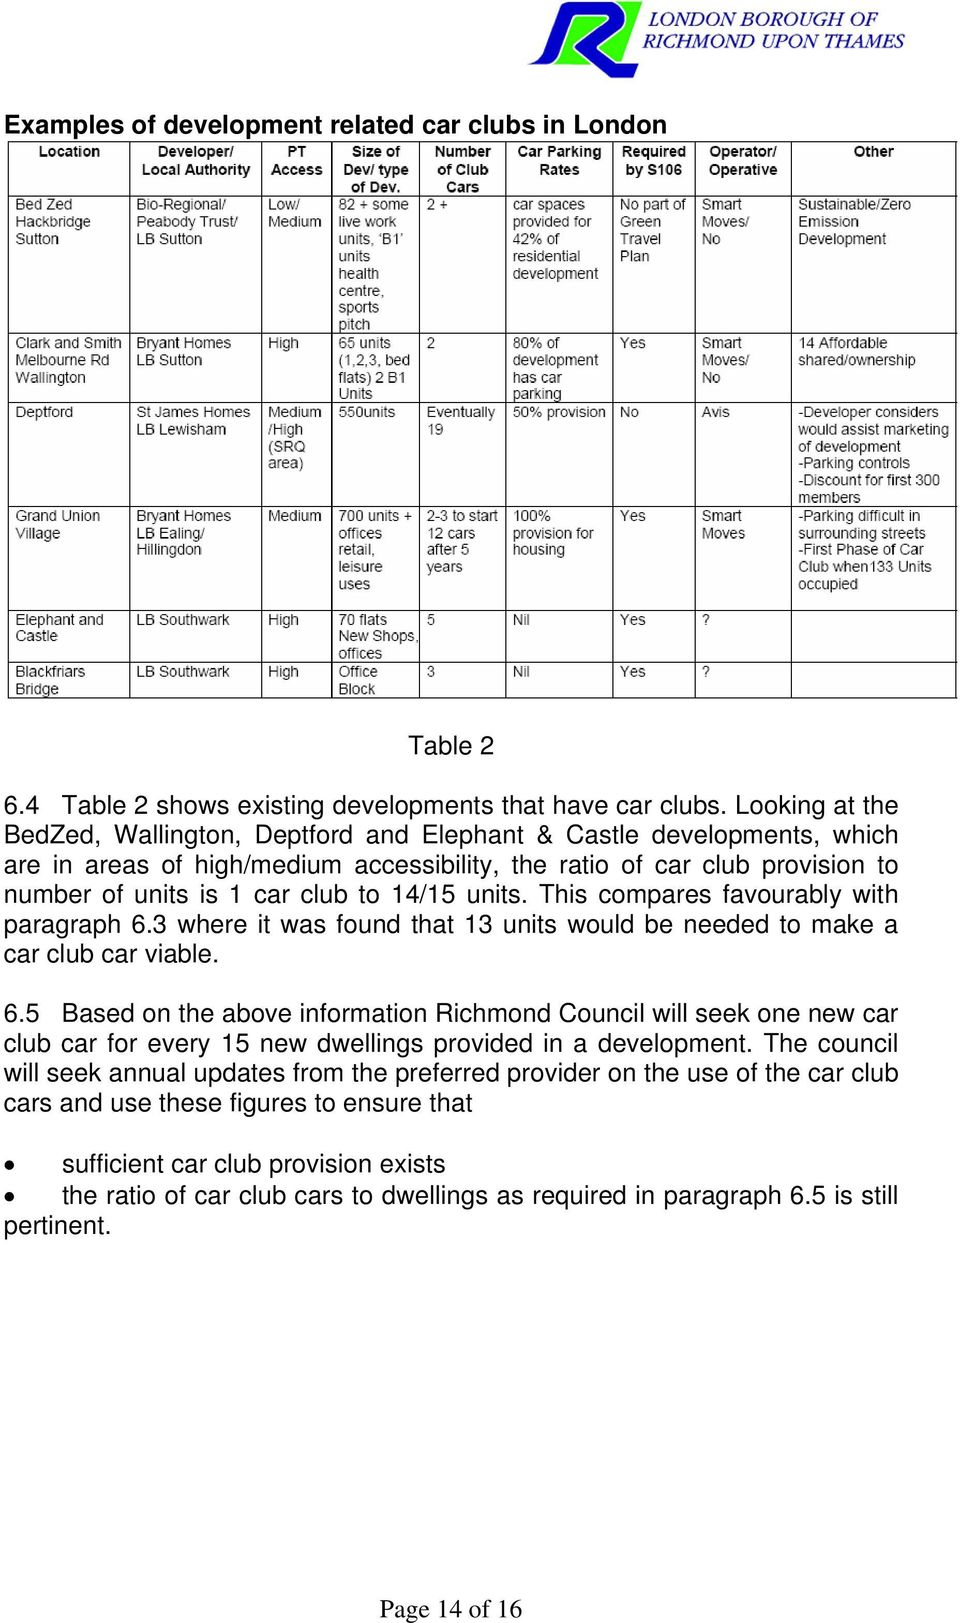 14/15 units. This compares favourably with paragraph 6.3 where it was found that 13 units would be needed to make a car club car viable. 6.5 Based on the above information Richmond Council will seek one new car club car for every 15 new dwellings provided in a development.